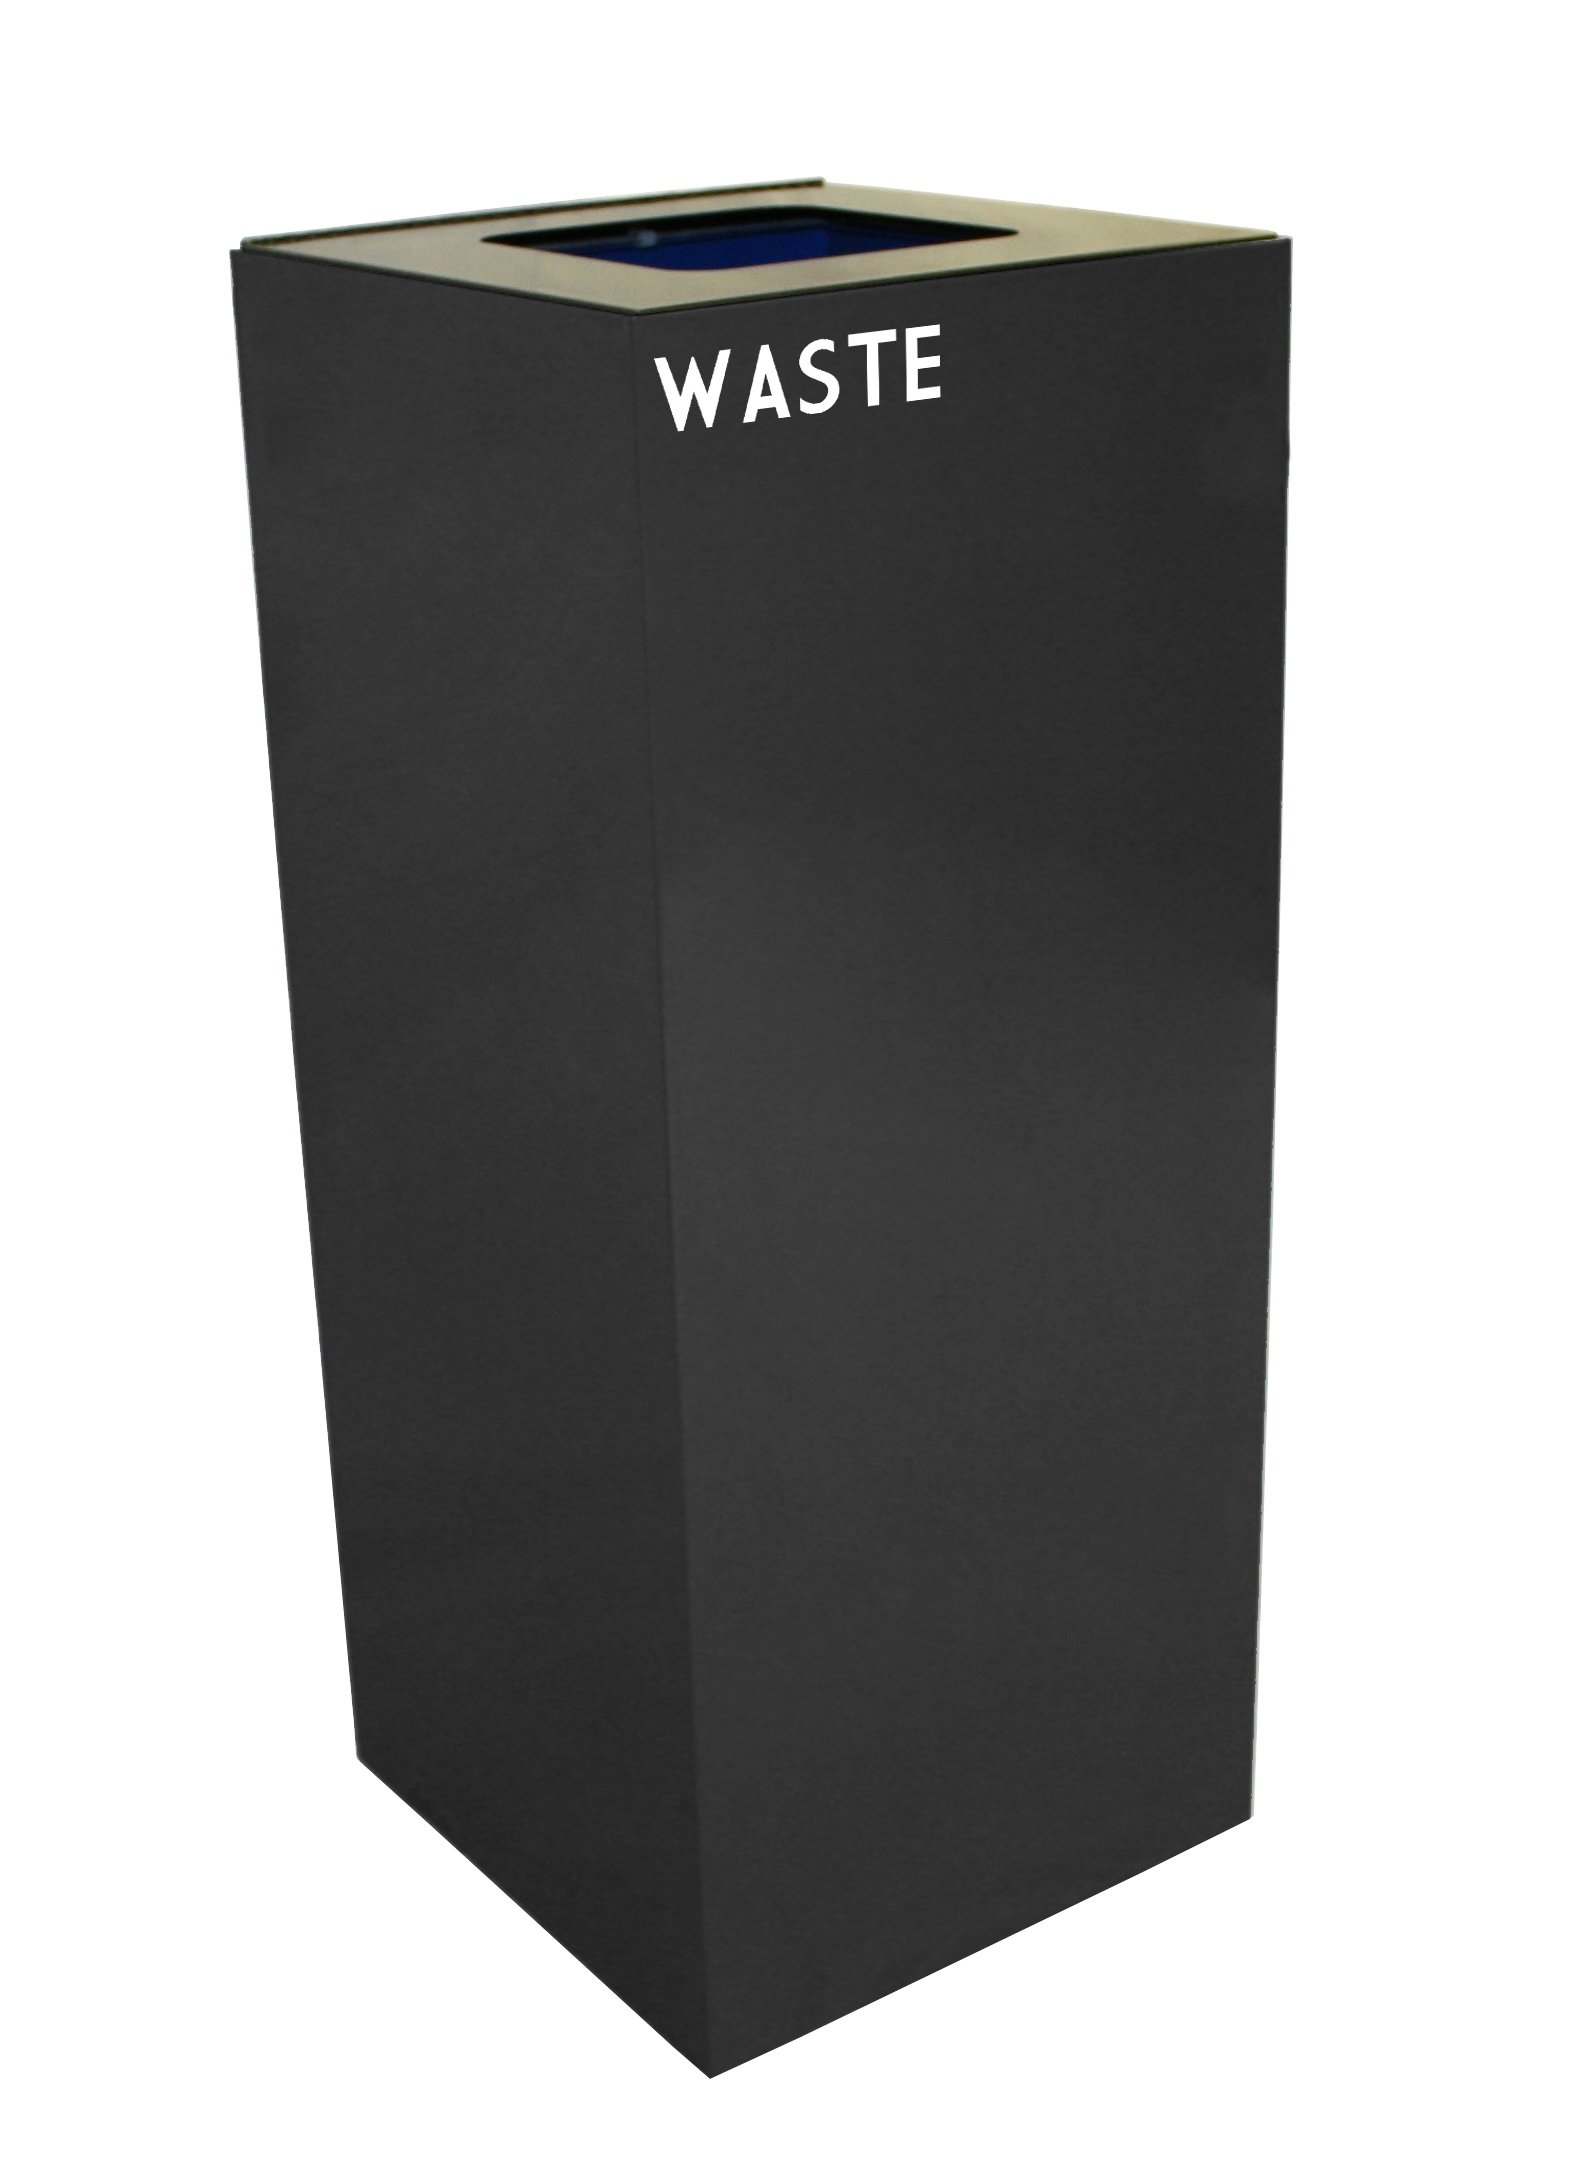 Witt Industries 36GC03-CB GeoCube Recycling Receptacle with Waste Opening, Steel, 36 gal, Charcoal by Witt Industries